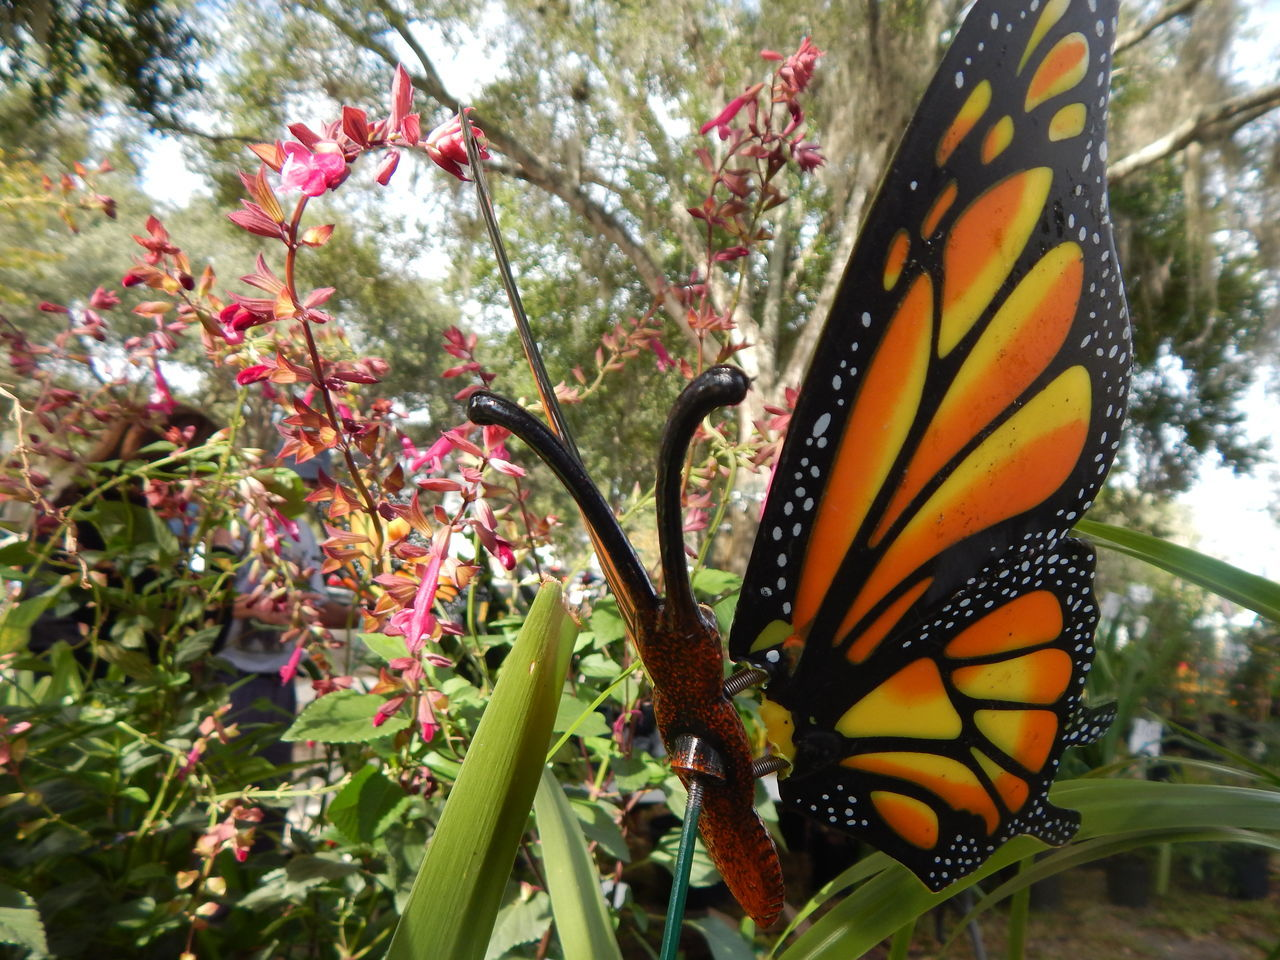 butterfly - insect, animal themes, nature, growth, insect, one animal, animals in the wild, beauty in nature, no people, plant, butterfly, day, flower, fragility, outdoors, animal wildlife, close-up, freshness, animal markings, tree, blooming, flower head, pollination